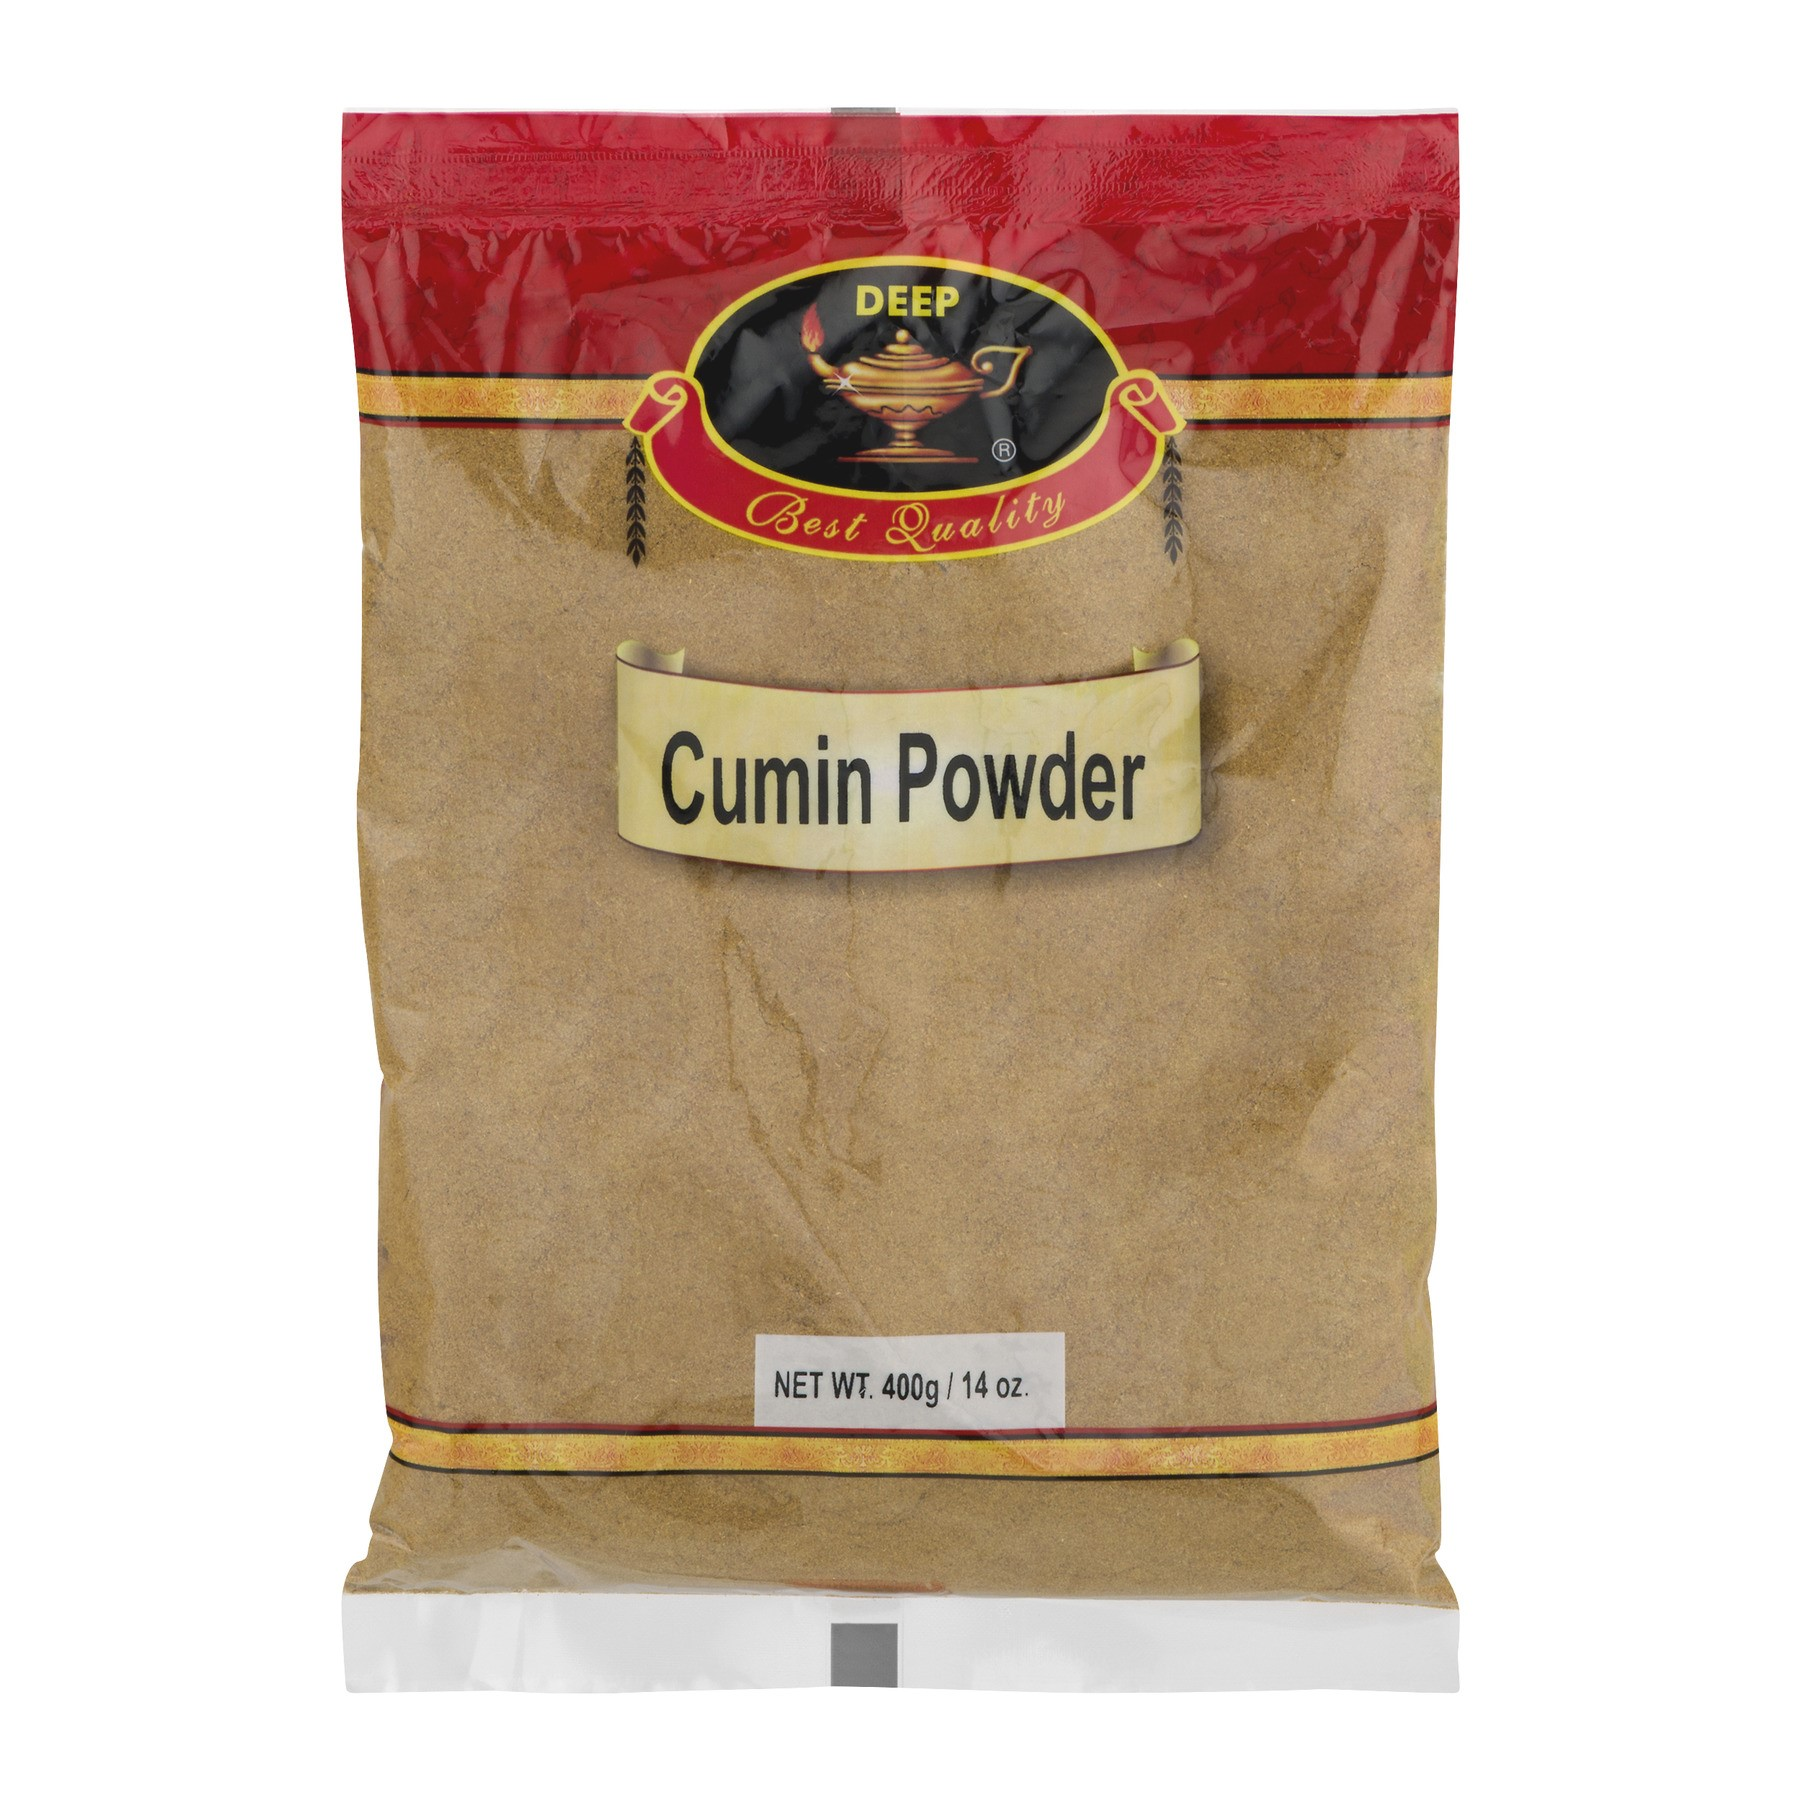 (2 Pack) DEEP Cumin Powder, 14 oz